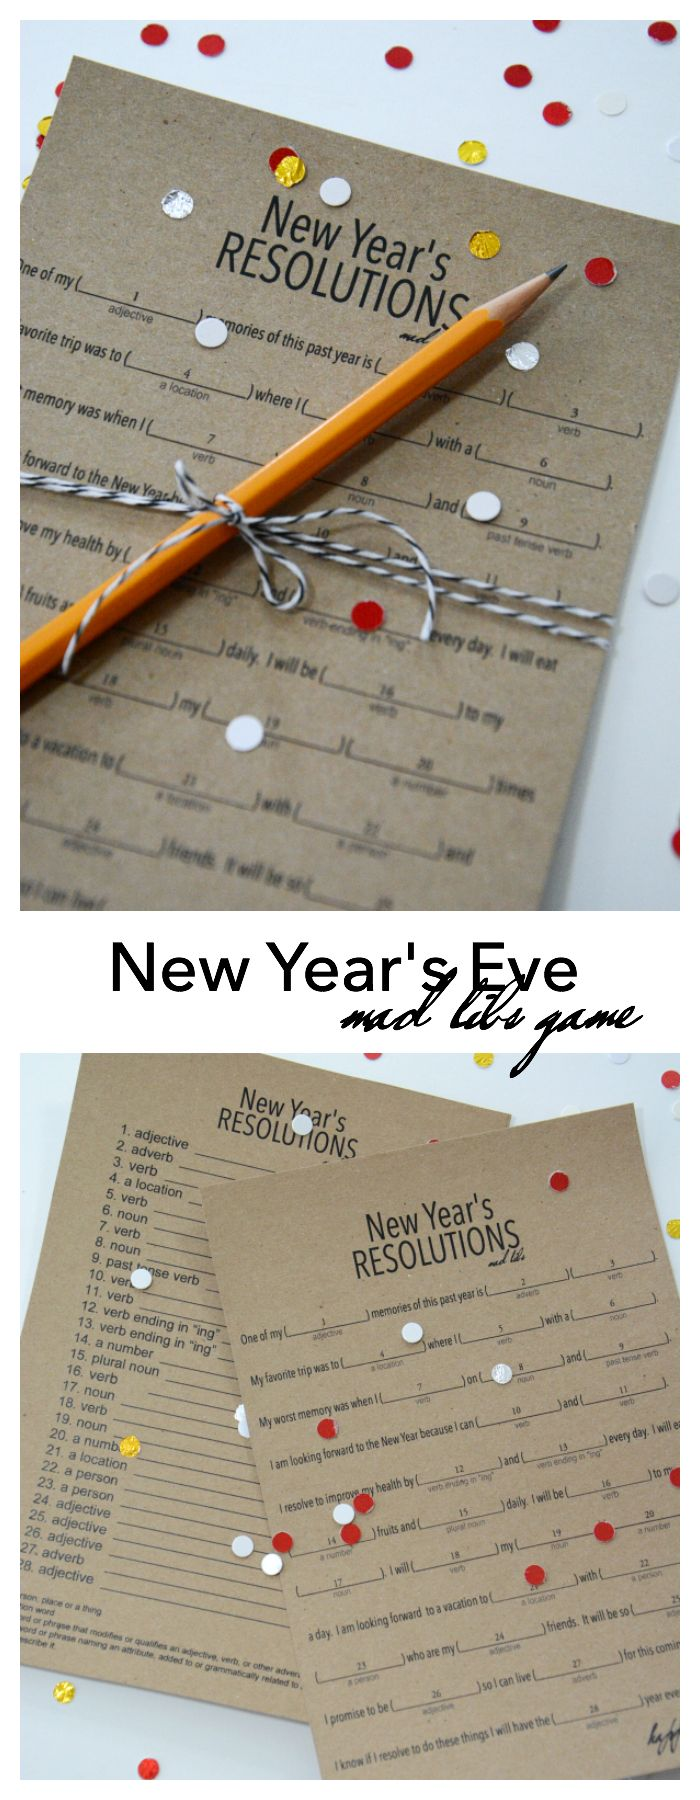 New Year's Eve | Play this fun New Year's Eve Game based on the Mad Libs games you played growing up. Free Printables provided for you New Year's Eve fun!